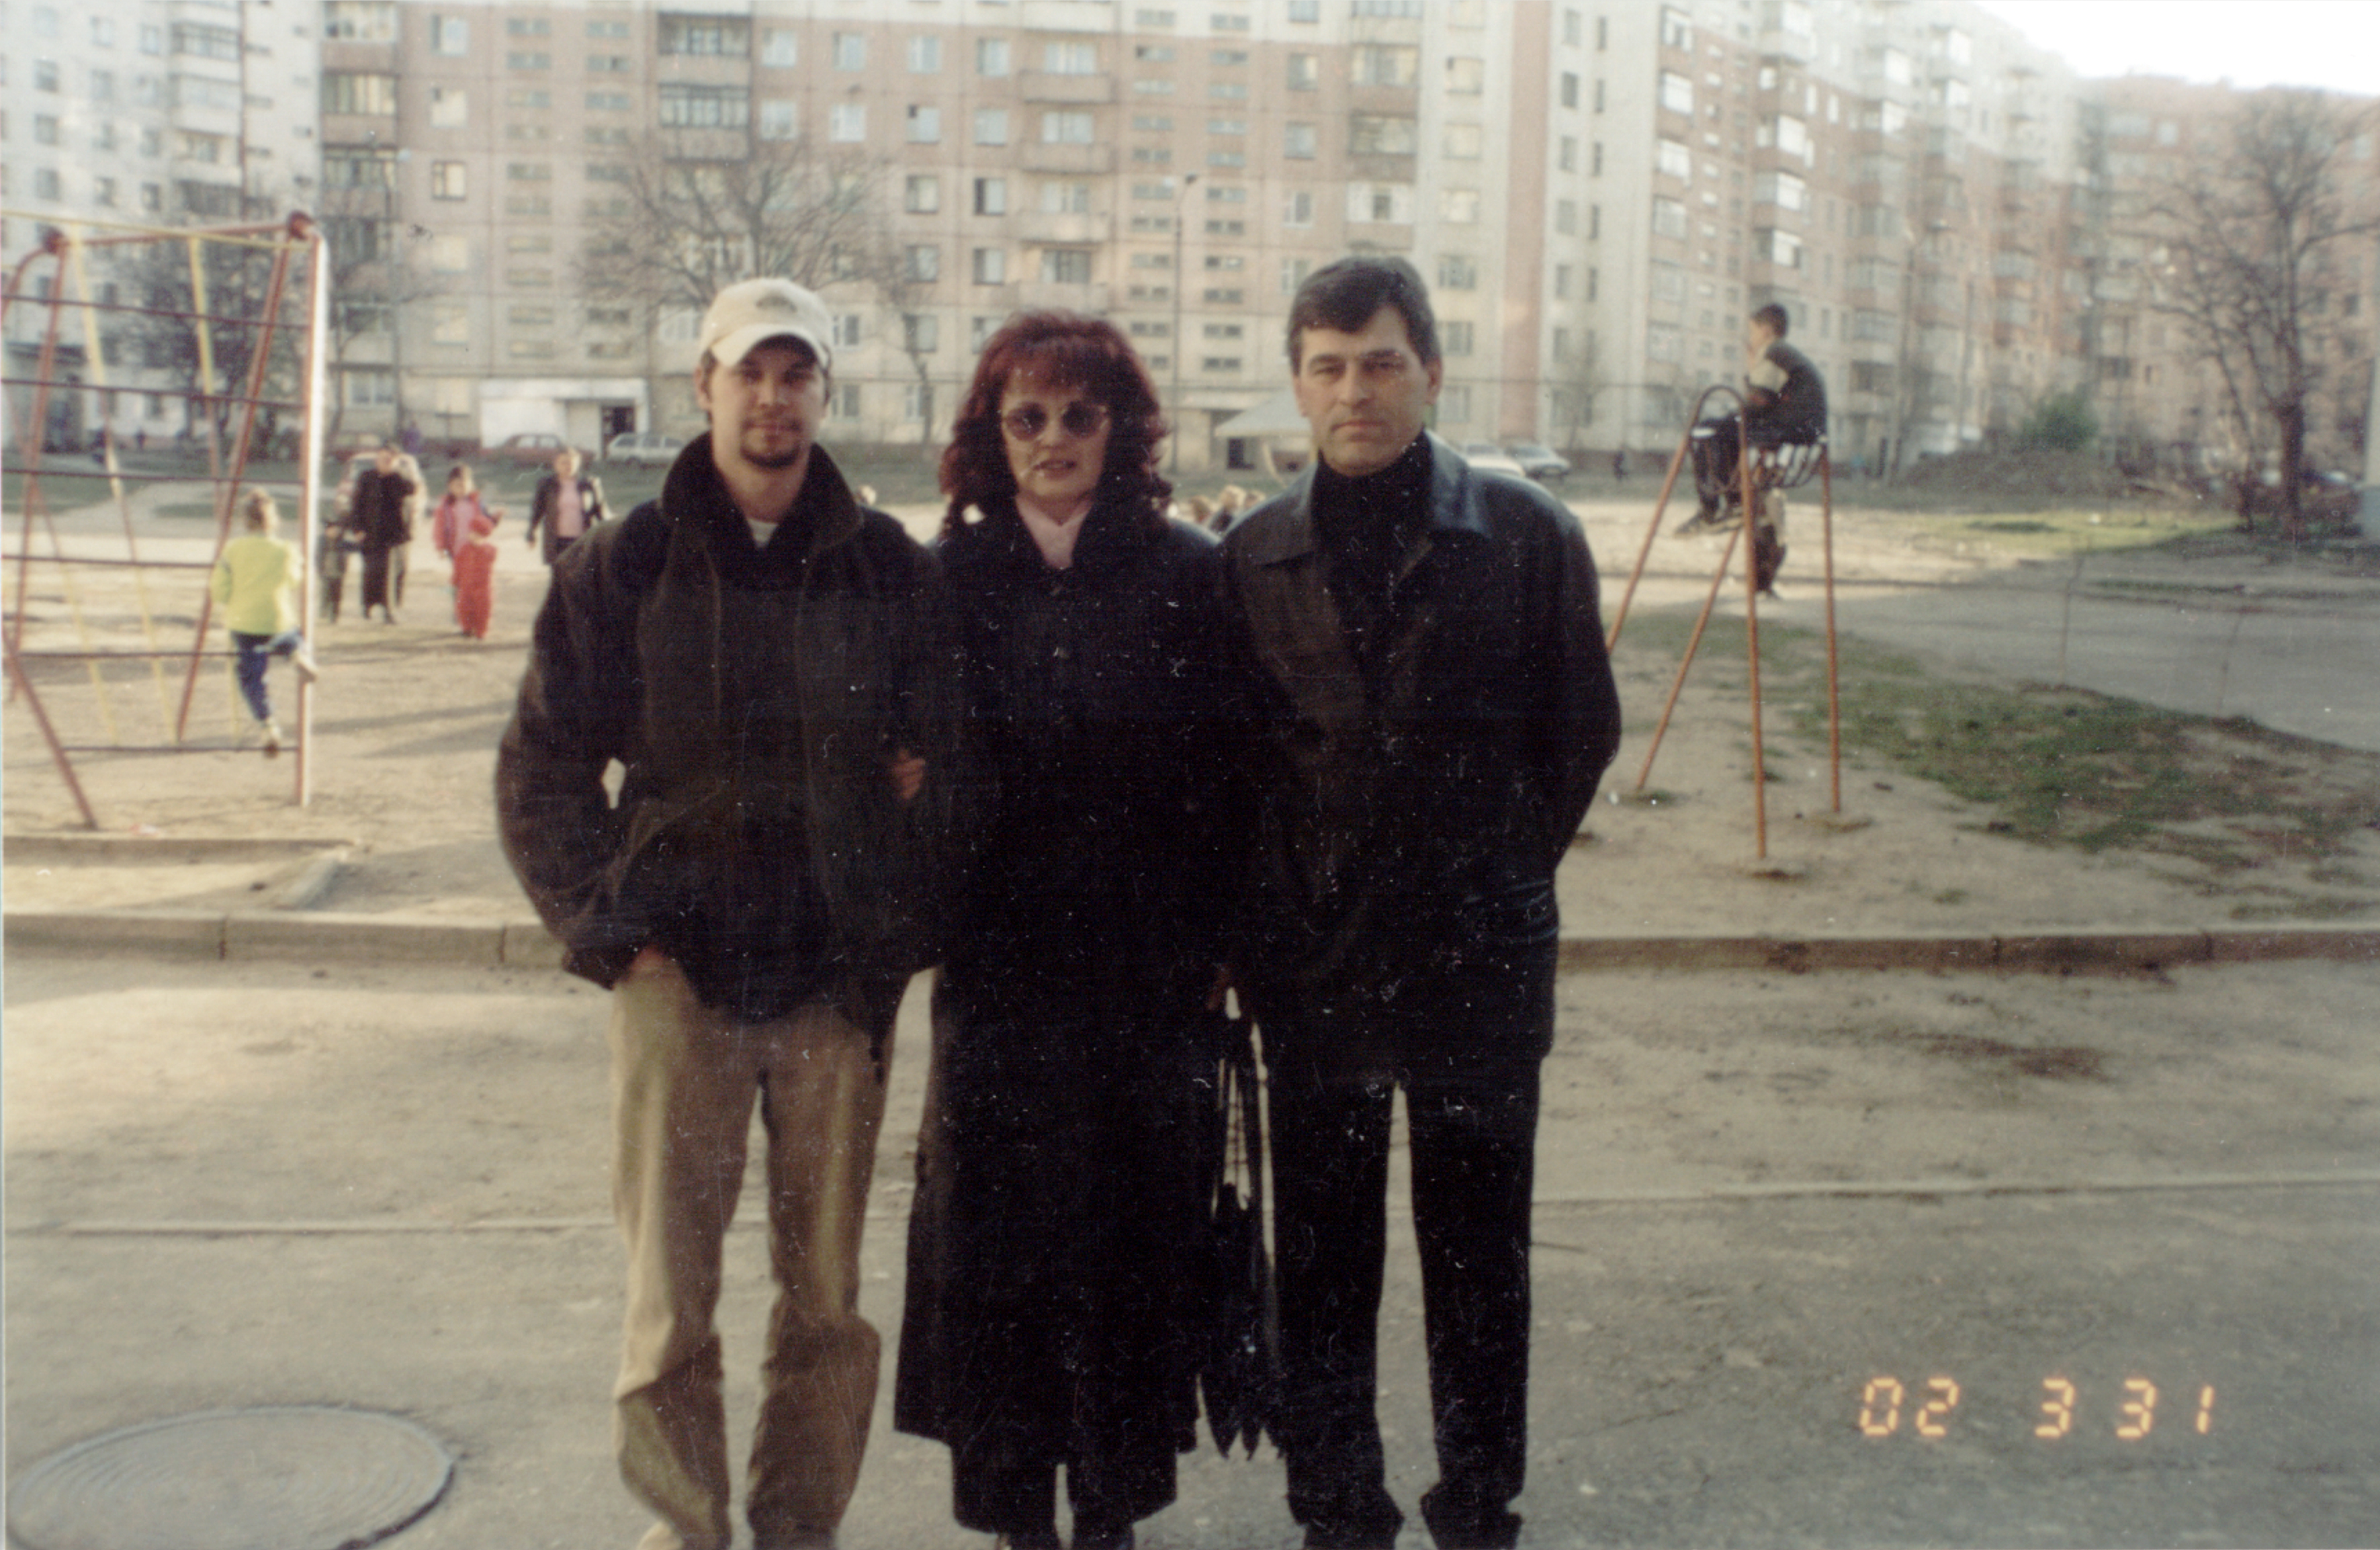 Vitali Geller with his family